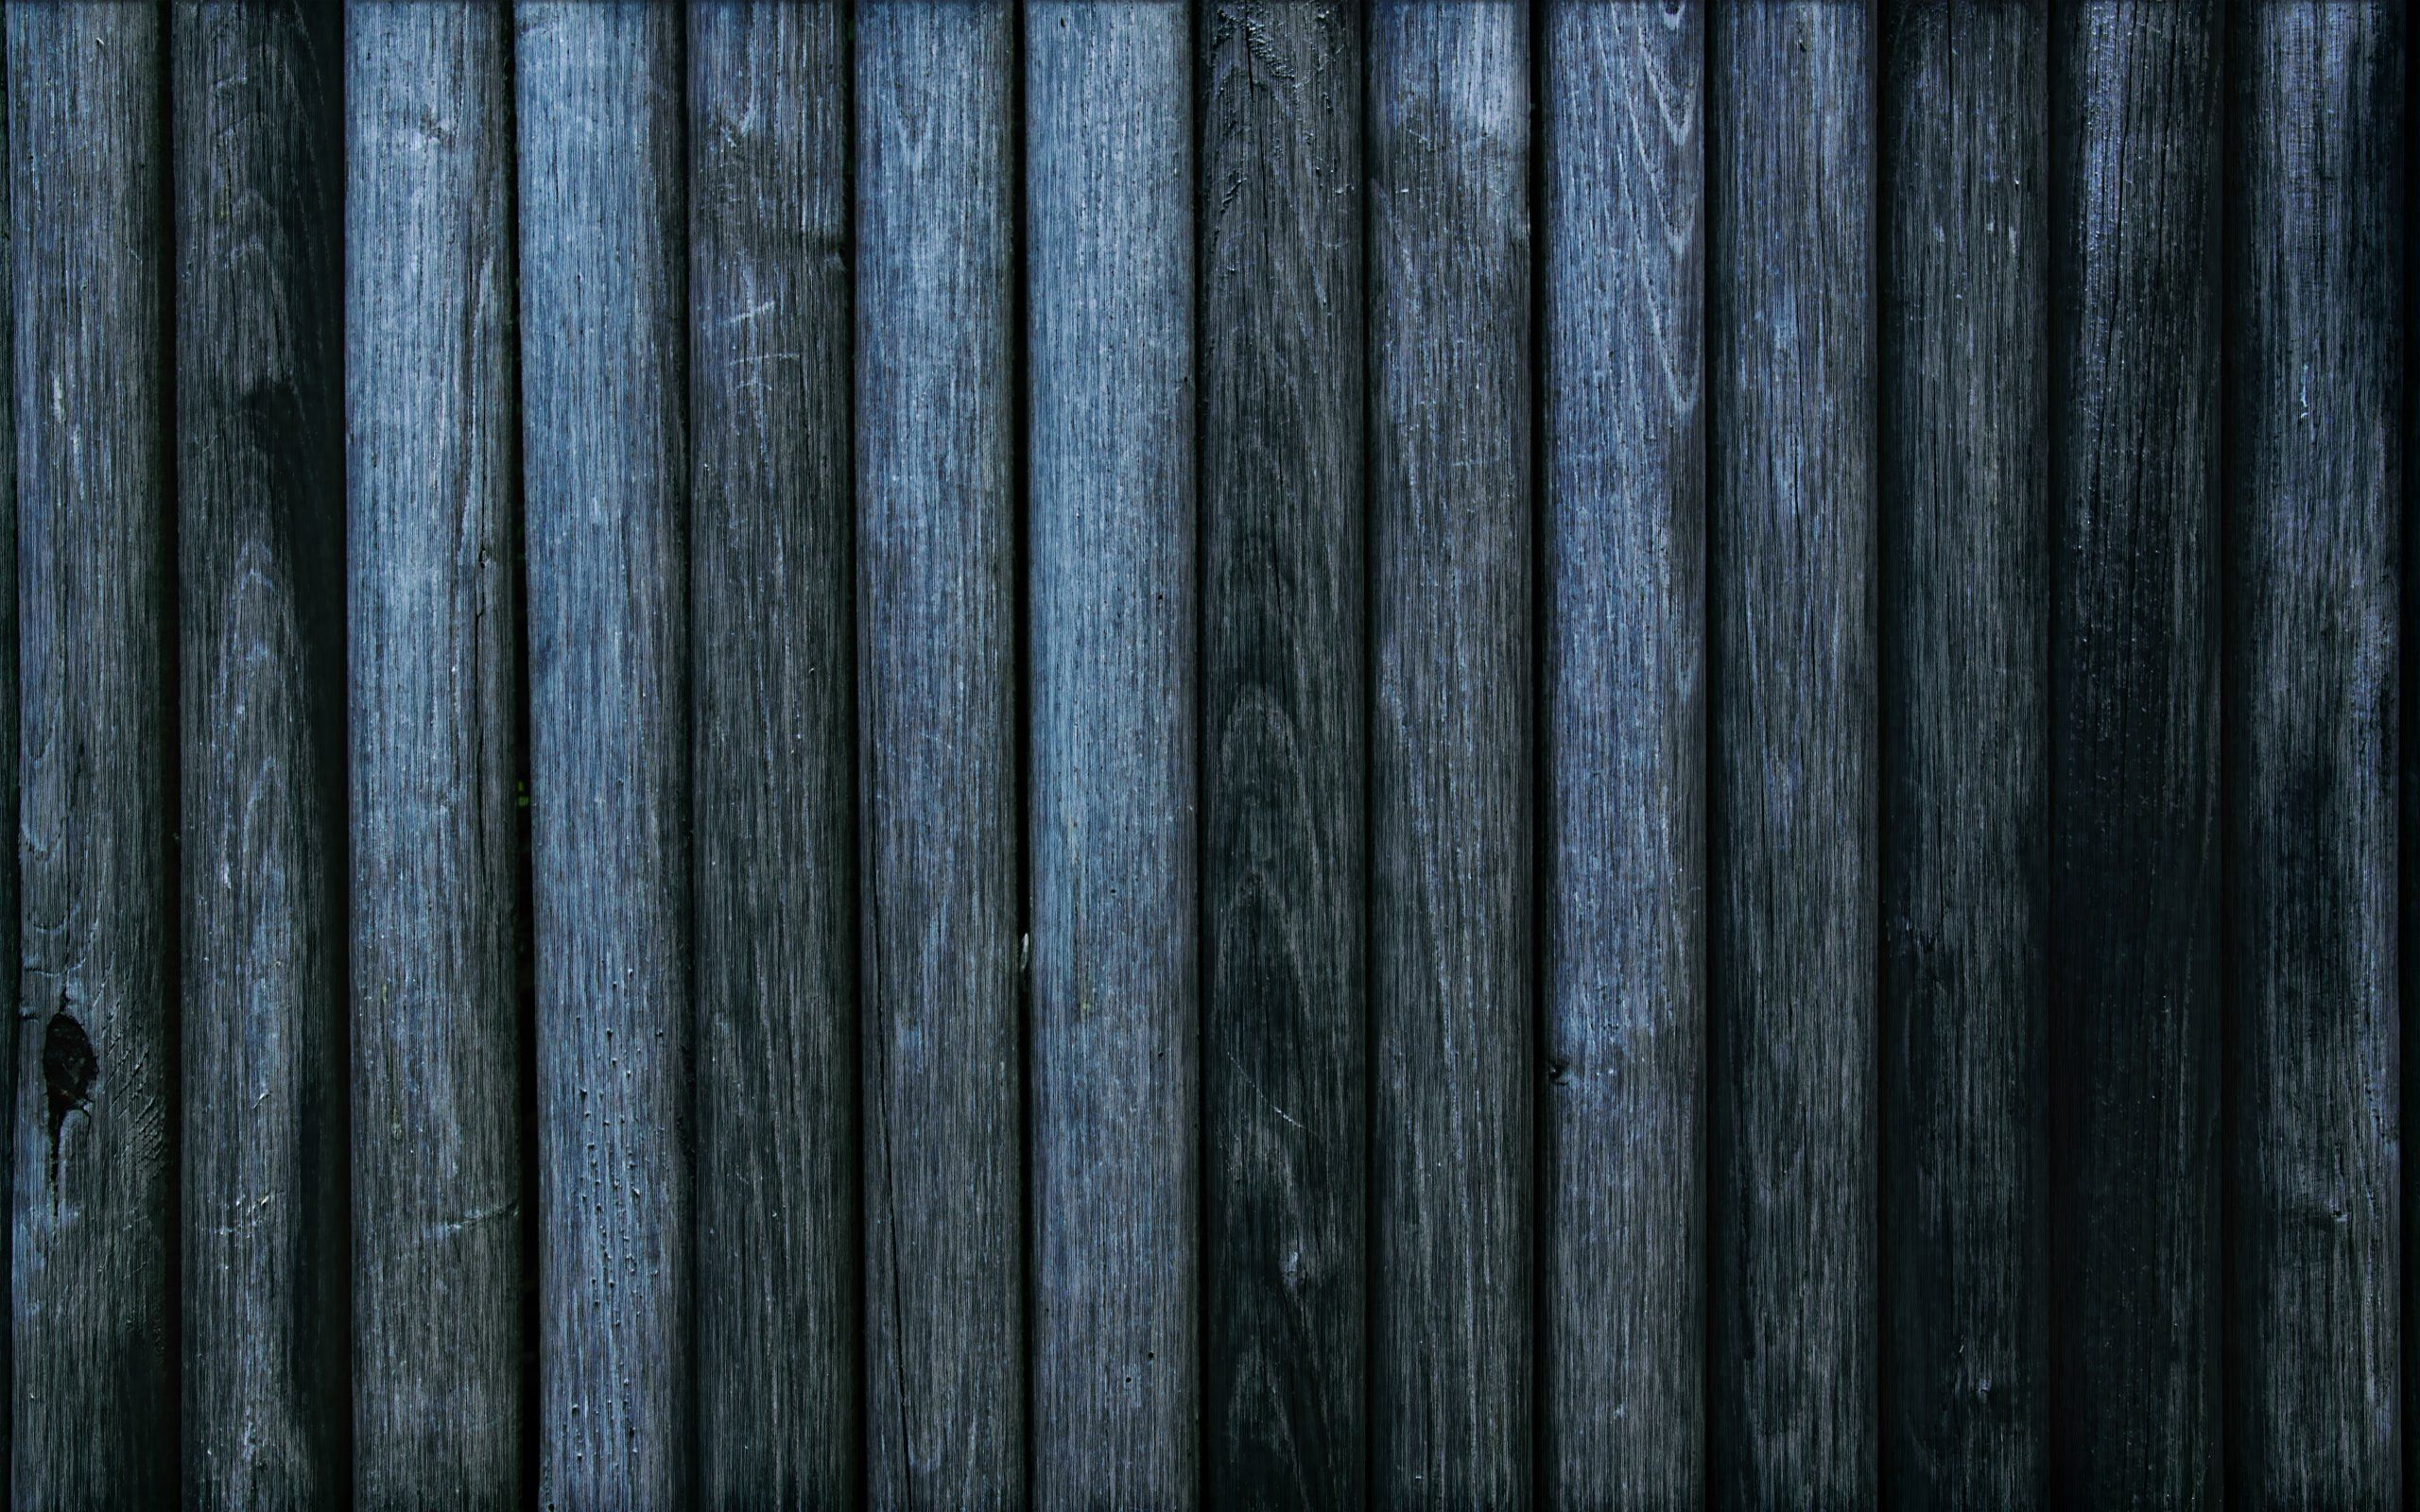 145660 download wallpaper Textures, Texture, Wood, Tree, Planks, Board, Macro screensavers and pictures for free